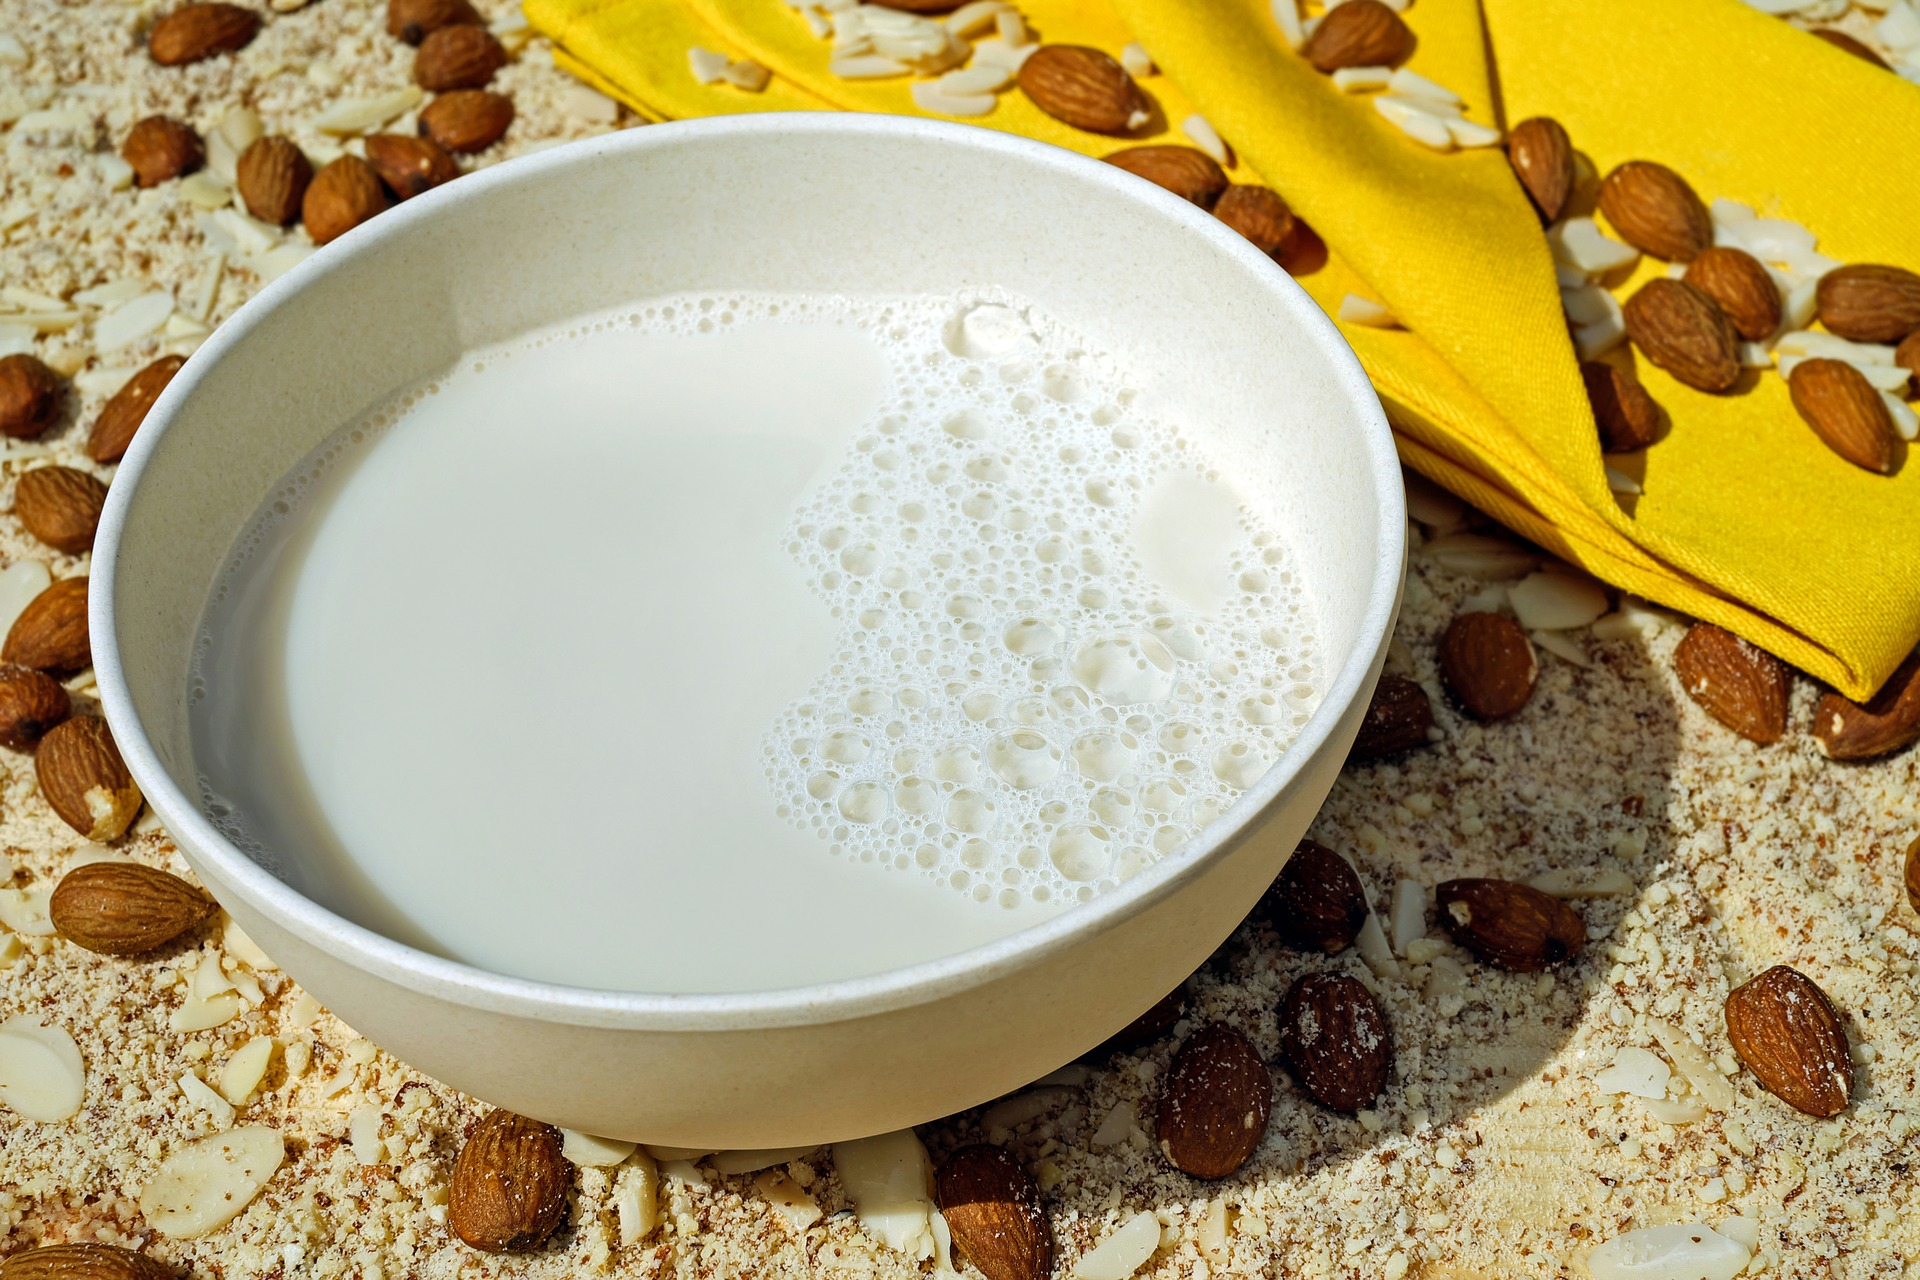 a bowl of almond milk with almonds scattered around the bowl